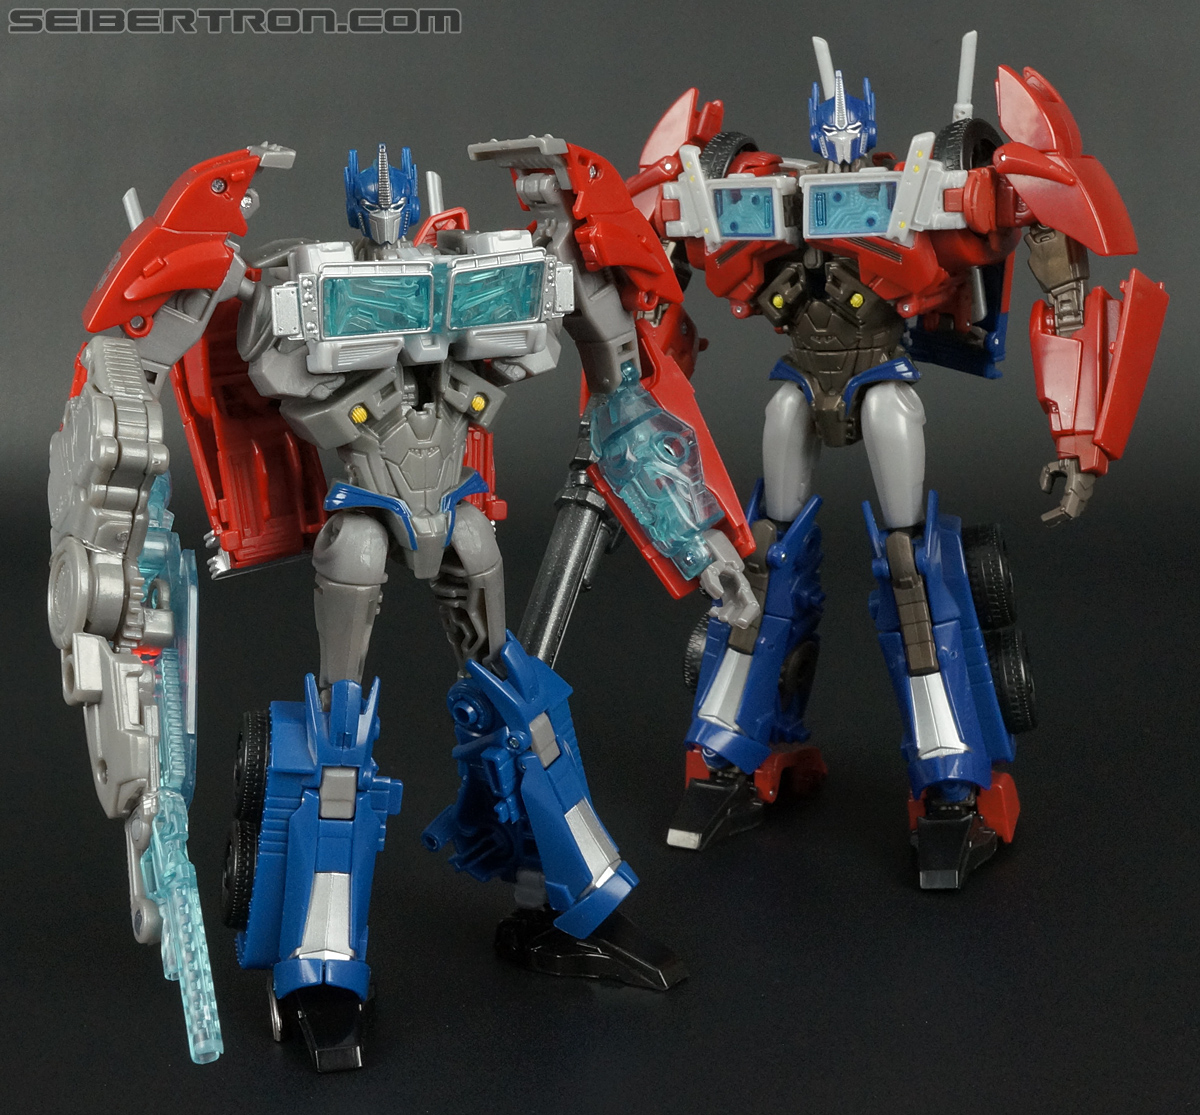 Transformers Prime: Robots In Disguise Optimus Prime (Image #143 of 176)